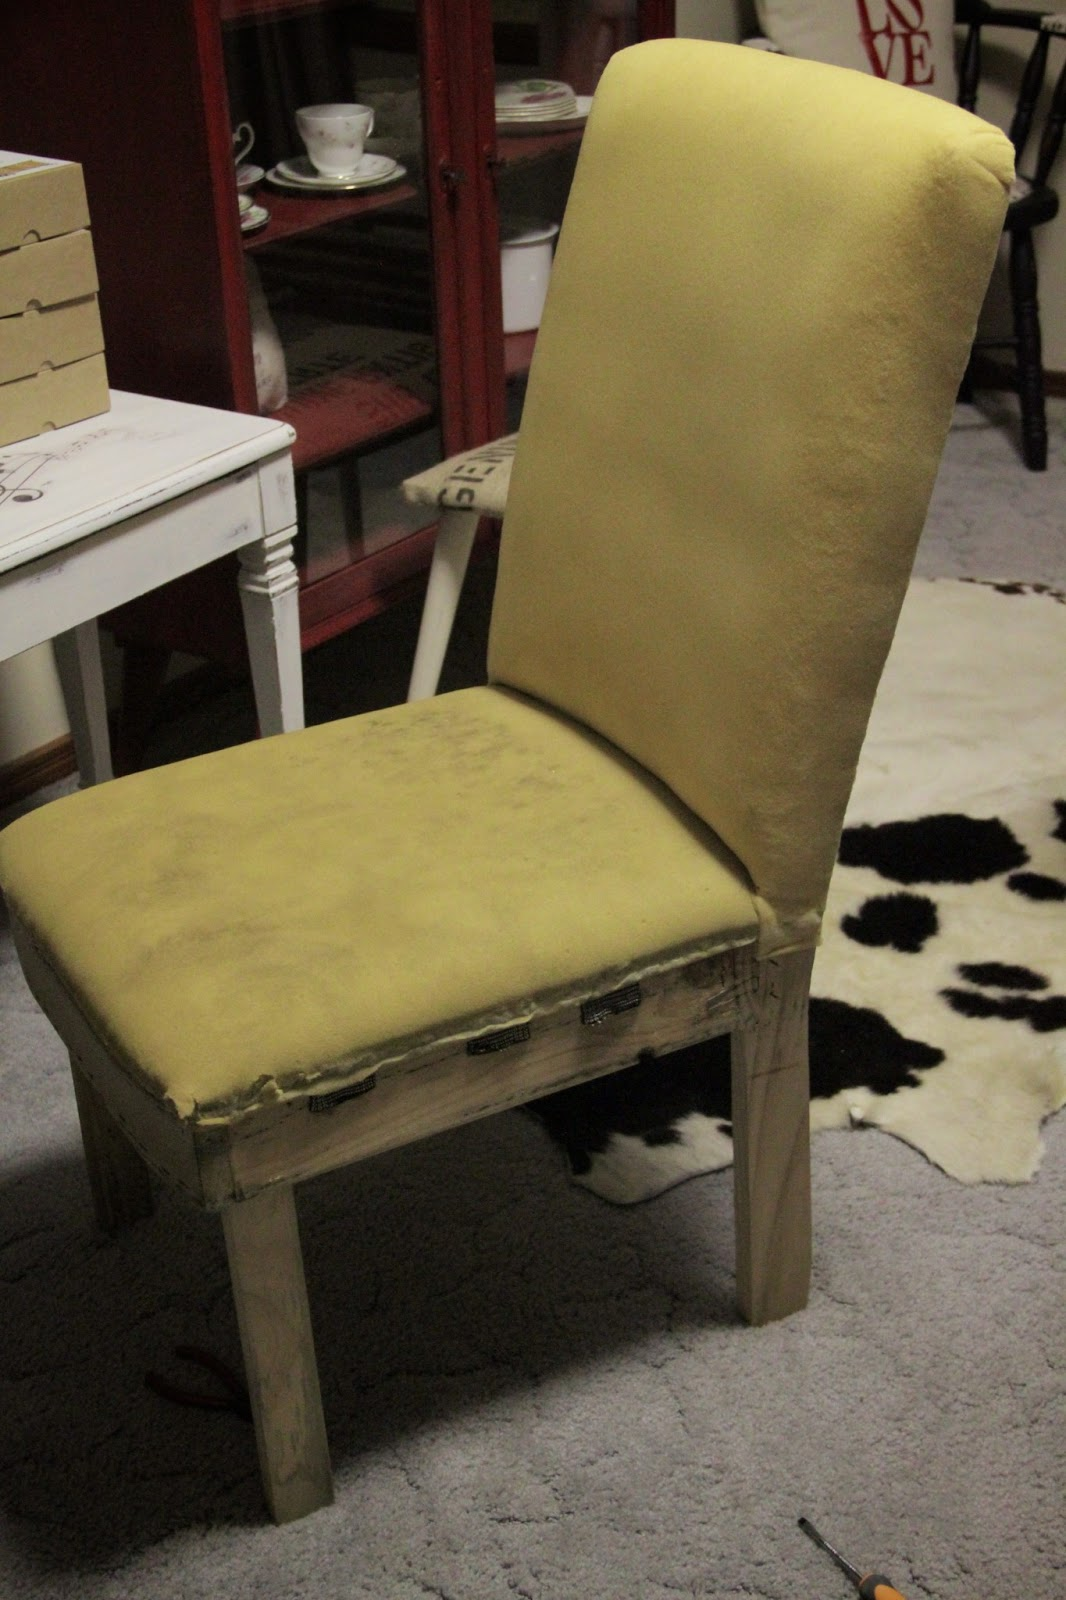 Diy chair upholstery - This Was The First Time I D Recovered Any Kind Of Fully Upholstered Furniture I Had Done The Odd Dining Chair With Cushioned Seat Or A Footstool